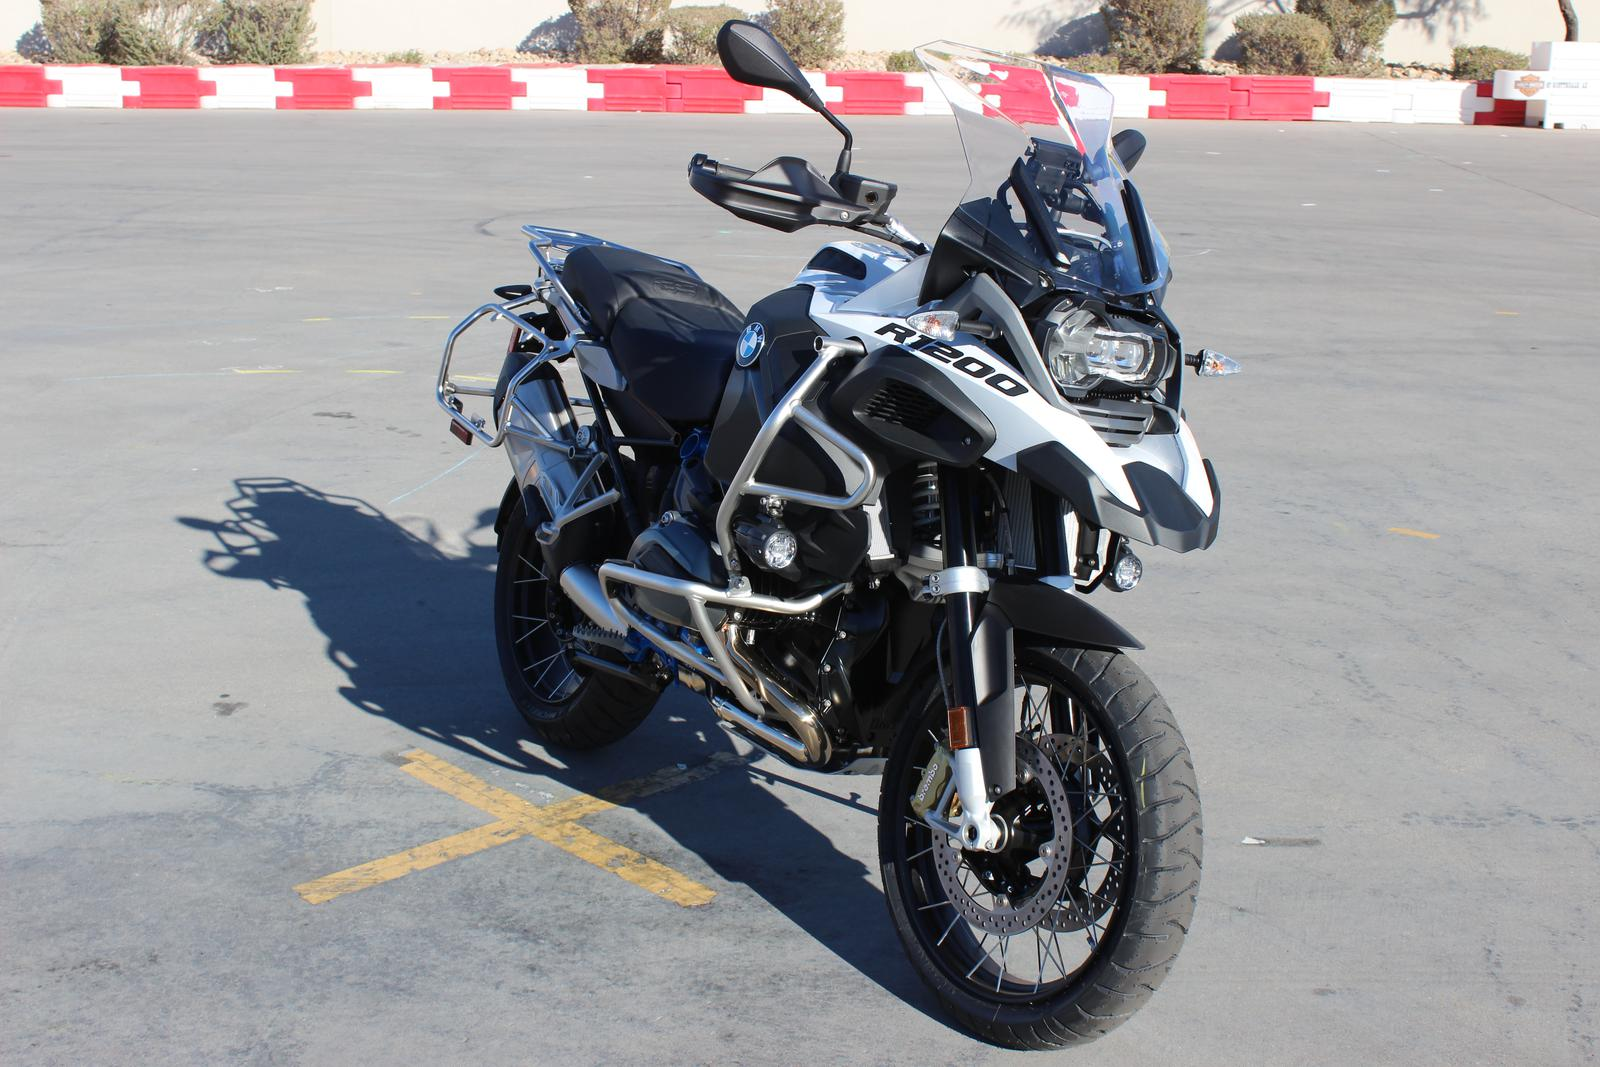 2018 Bmw R 1200 Gs Adventure For Sale In Scottsdale Az Go Az